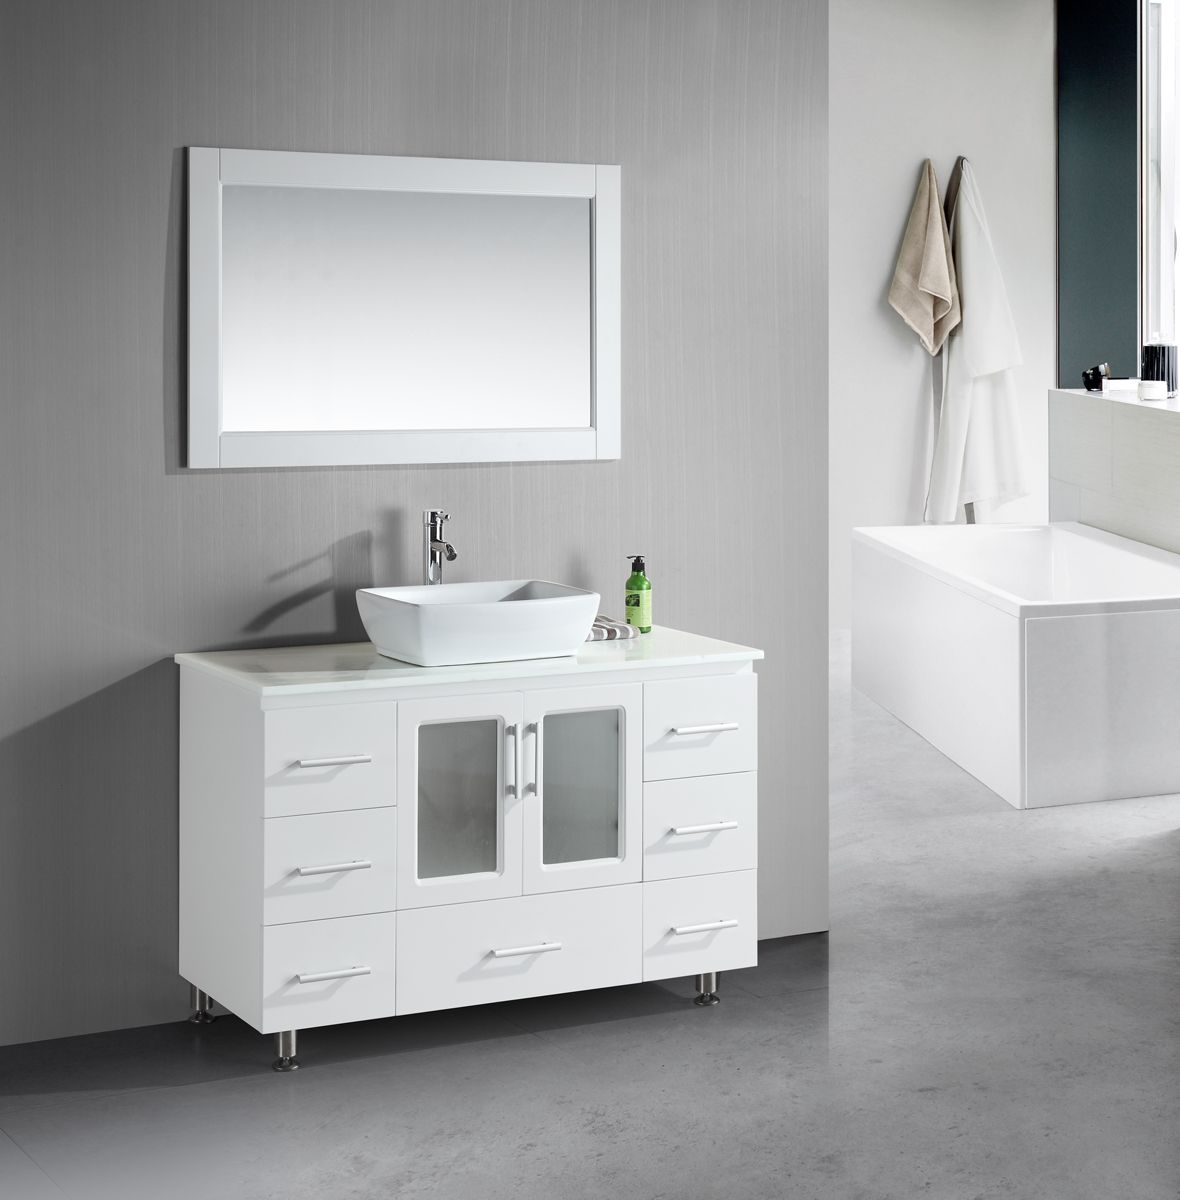 Charming Bathrooms With Showers And Tubs Tall Bath And Shower Enclosures Square Lamps For Bathroom Vanities Can I Use A Whirlpool Bath When Pregnant Old Grout Bathroom Shower Tile PurpleCeramic Tile Design For Bathroom Walls 1000  Images About White Bathroom Vanities On Pinterest ..